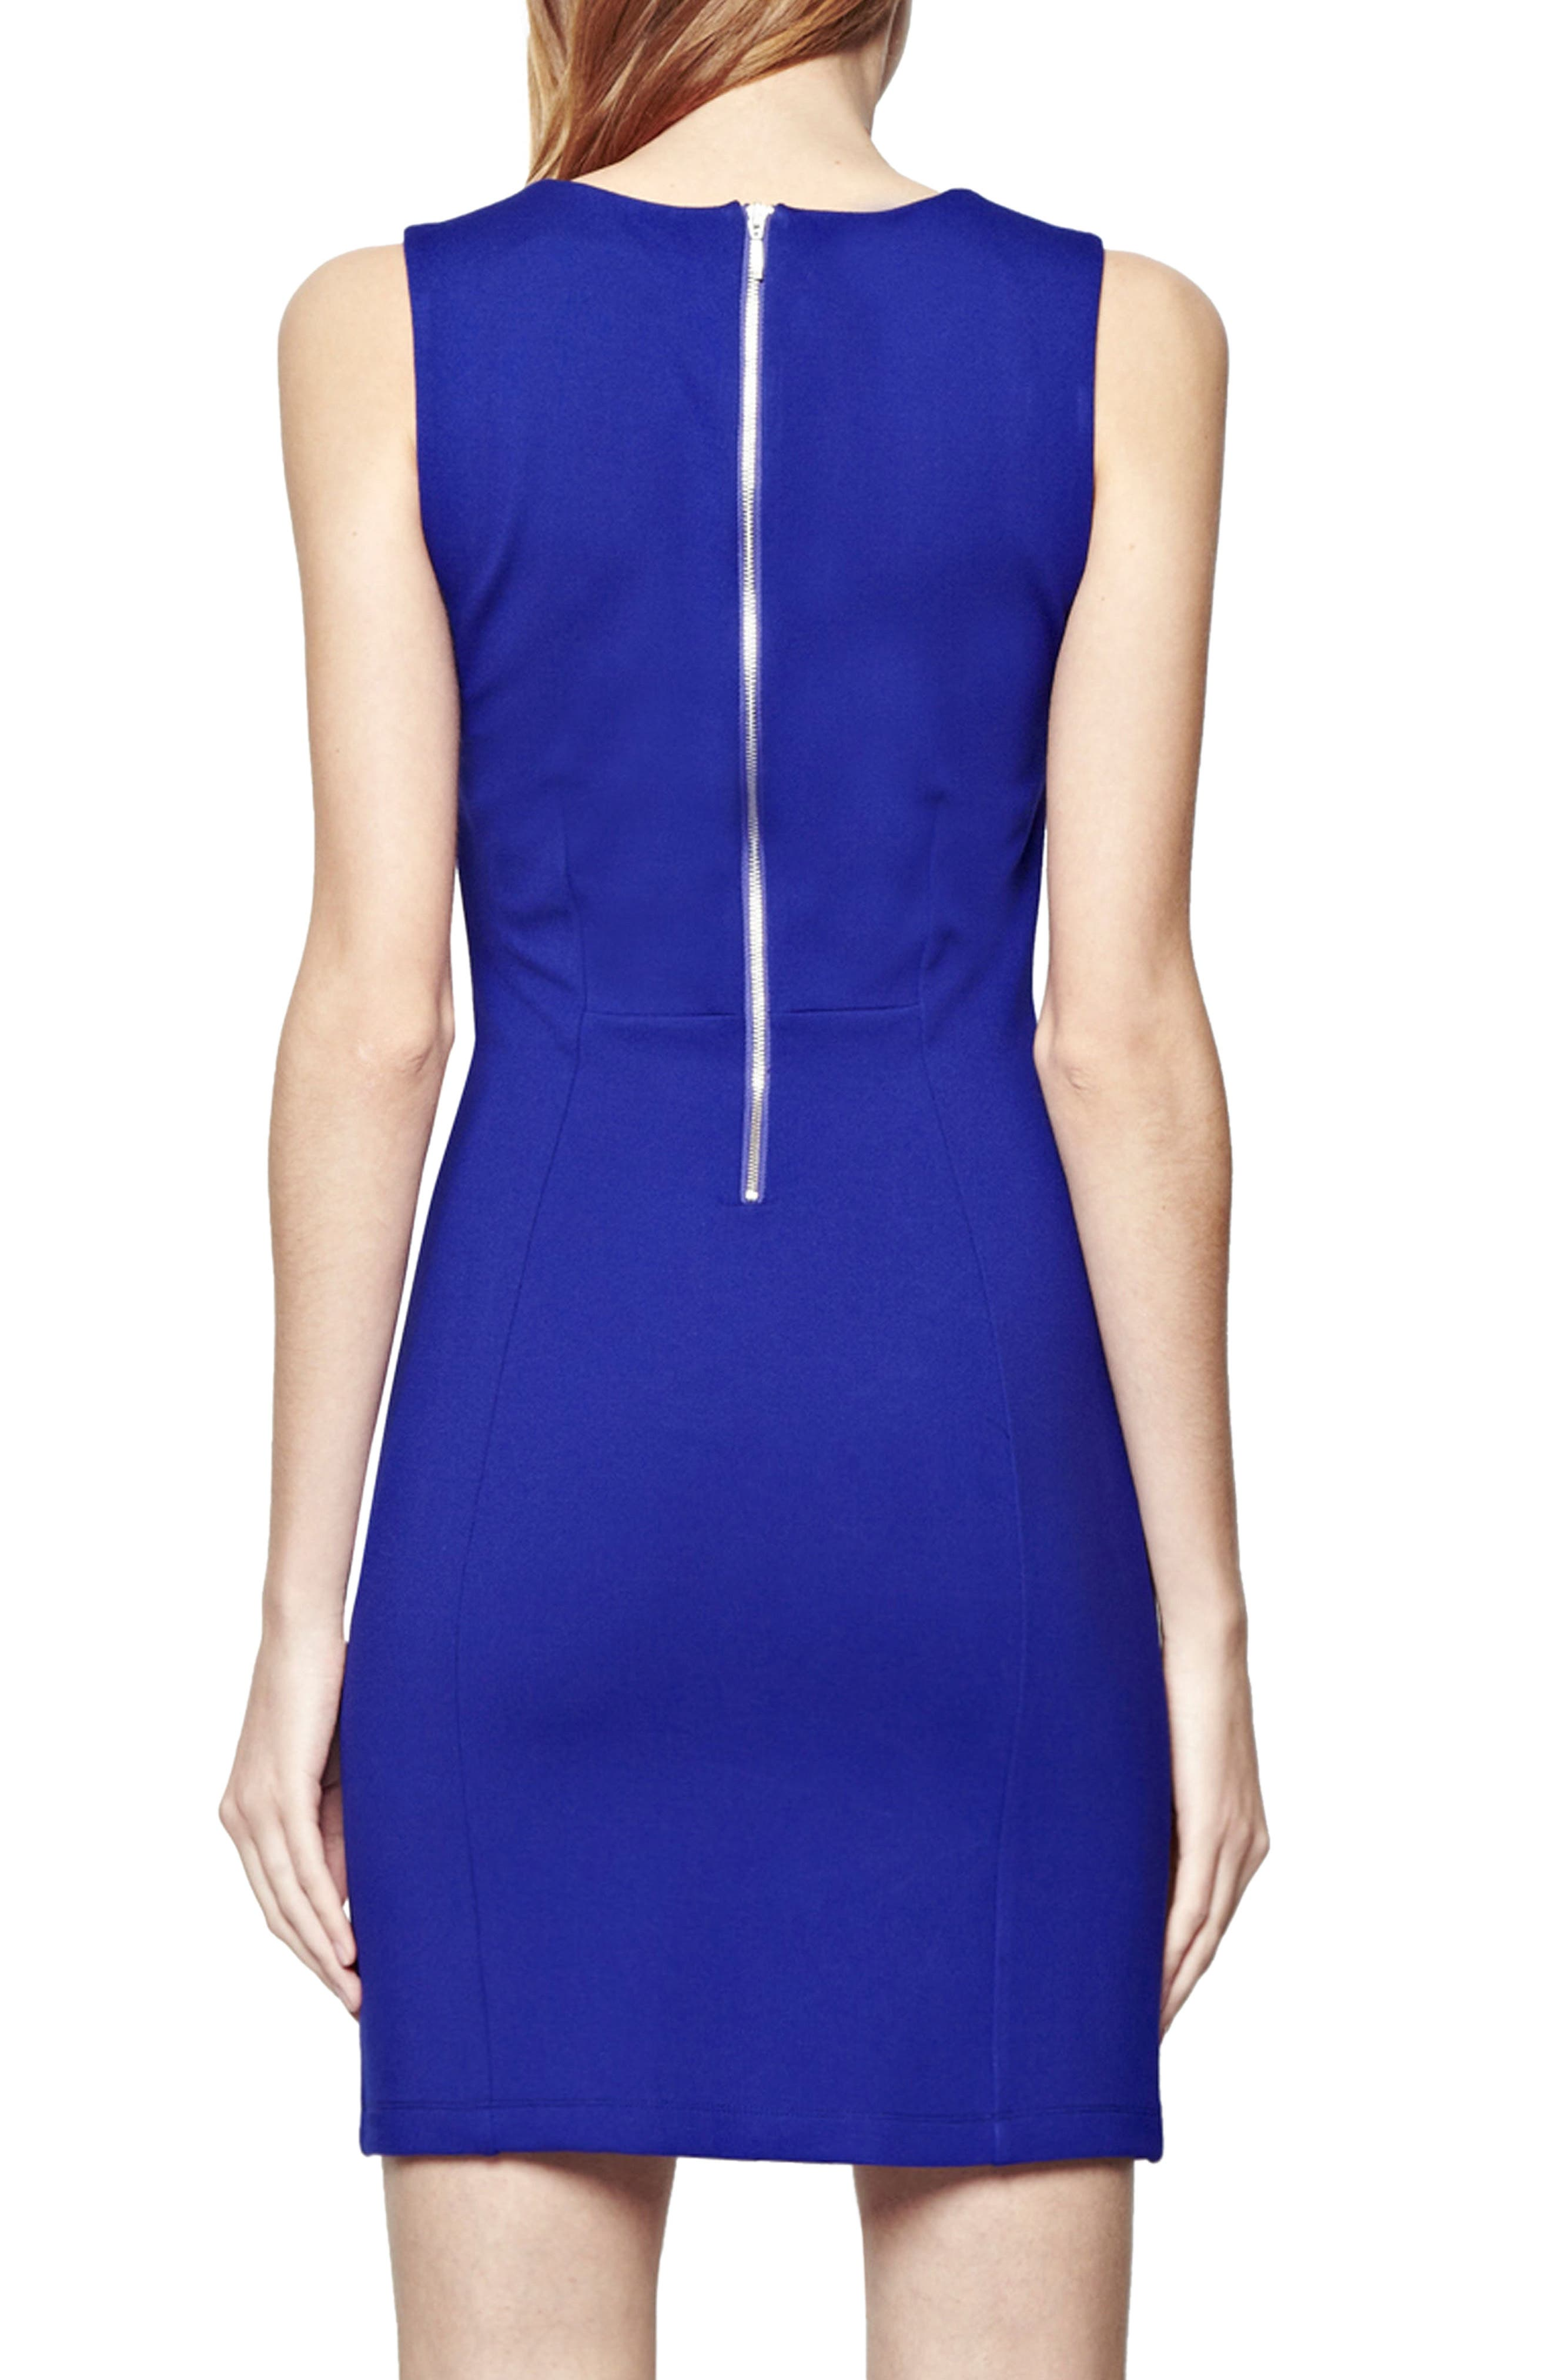 'Lula' Stretch Body-Con Dress,                             Alternate thumbnail 2, color,                             420